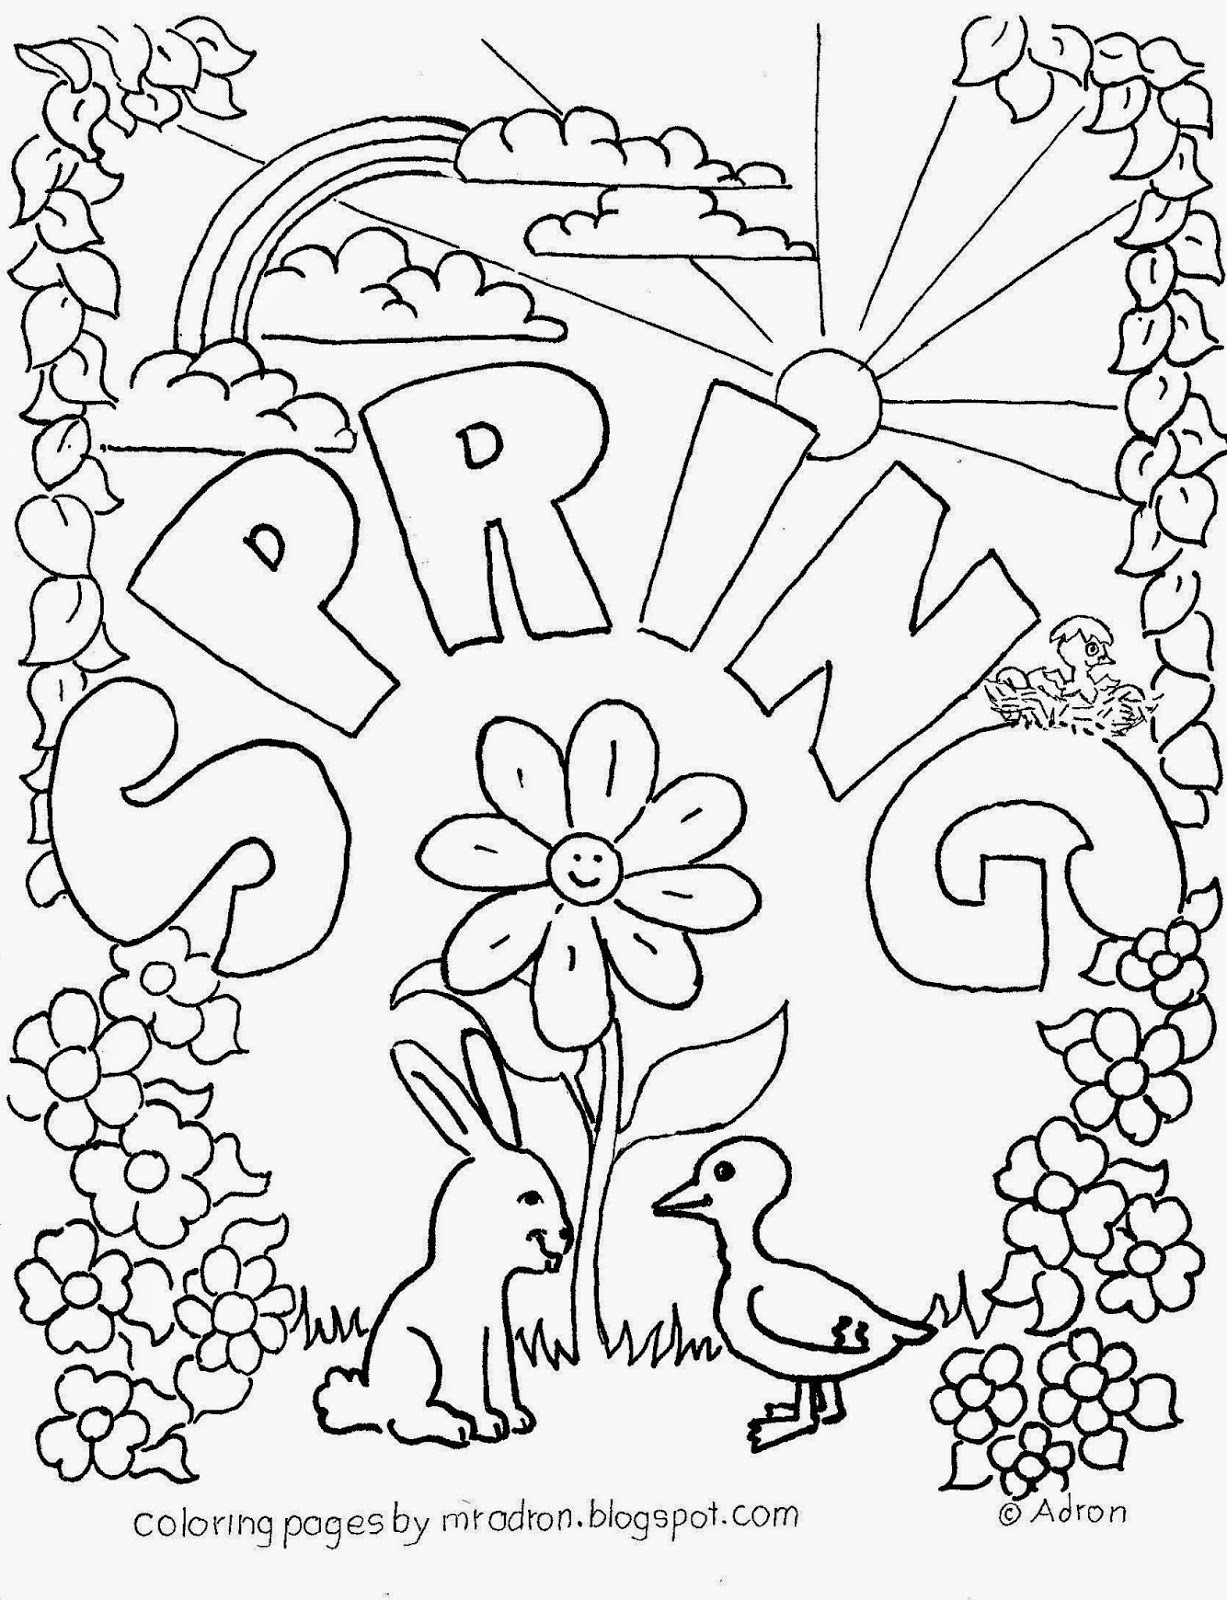 Groundhog Day Printable Coloring Pages Happy Groundhog Day Coloring Pages For Kids Elegant First Collection